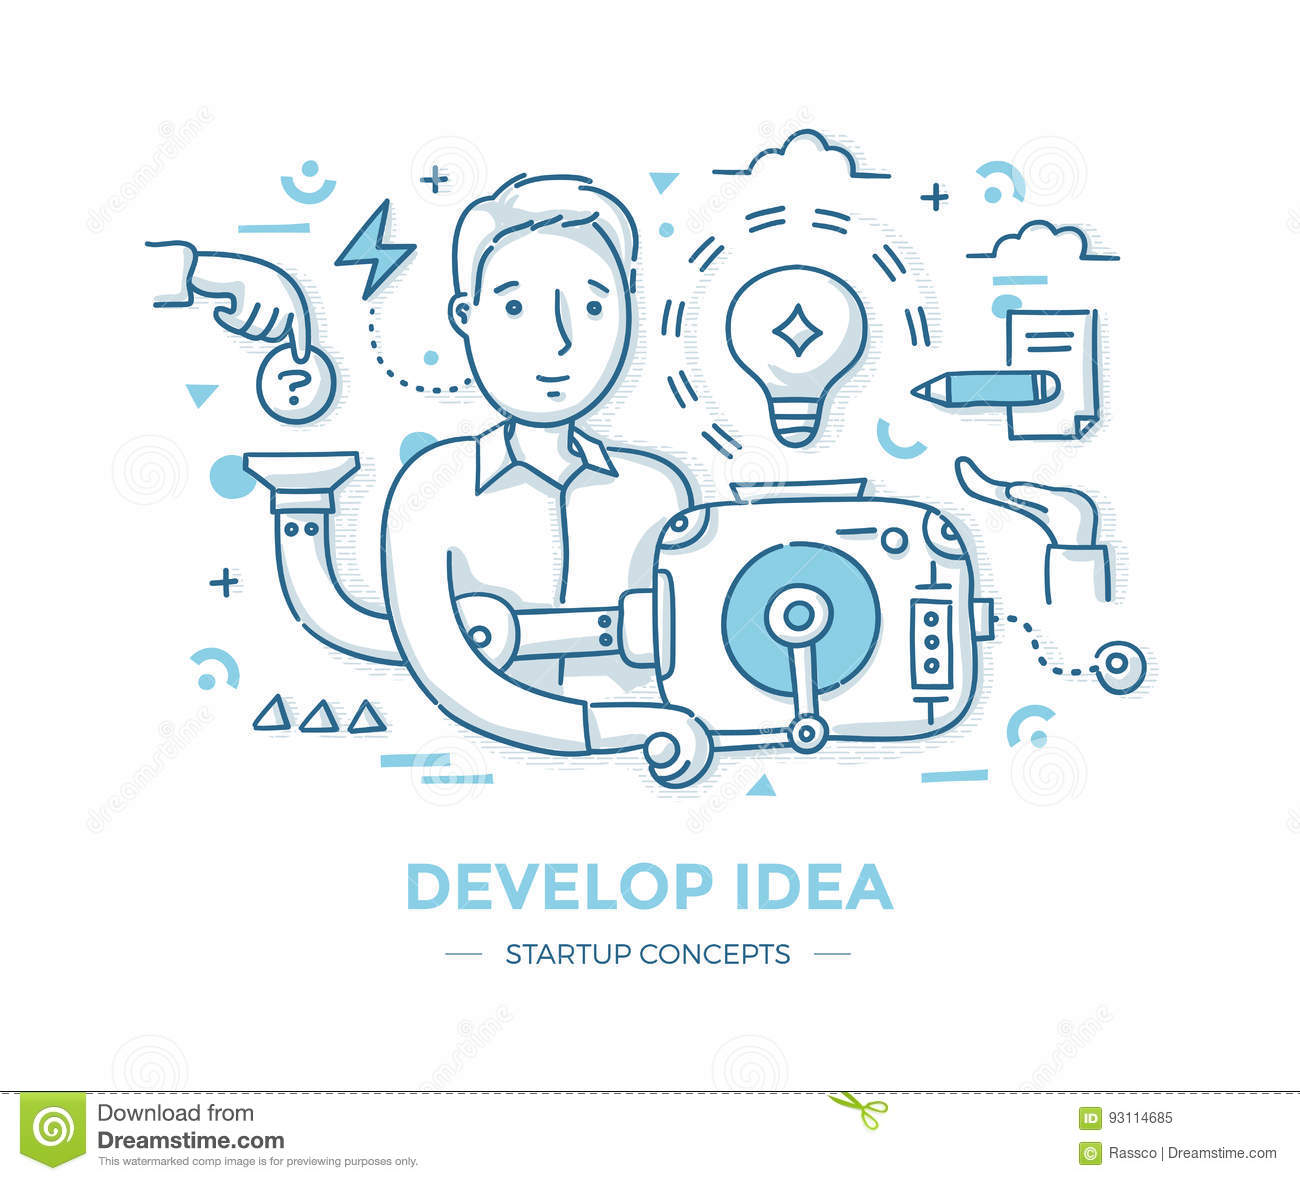 Develop Startup Idea stock vector. Illustration of thinking - 93114685